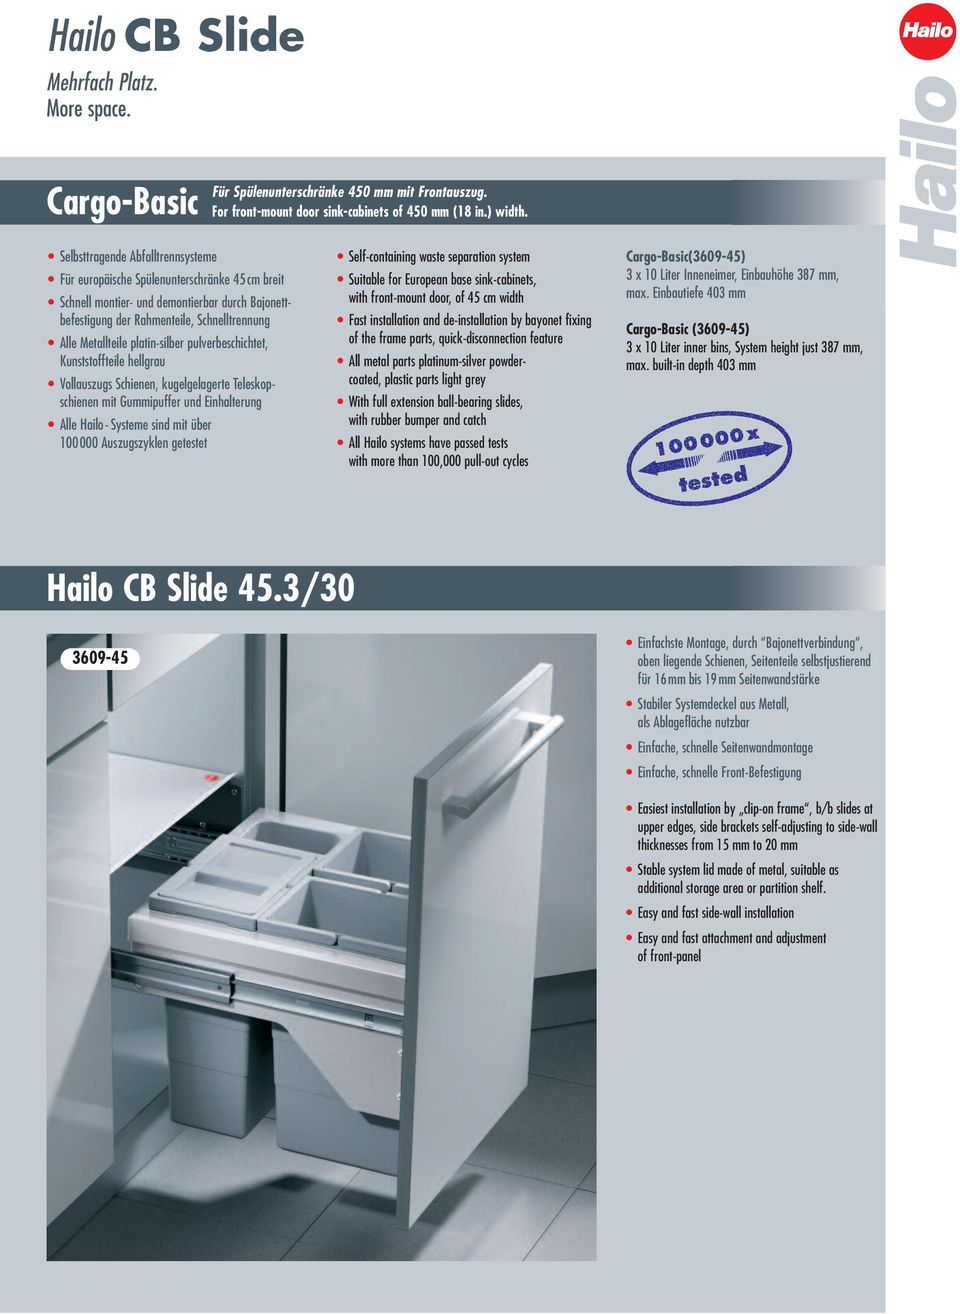 zyklen getestet Self-containing waste separation system with front-mount door, of 45 cm width with more than 00,000 pull-out cycles (3609-45) 3 x 0 Liter Inneneimer, Einbauhöhe 387 mm, max.